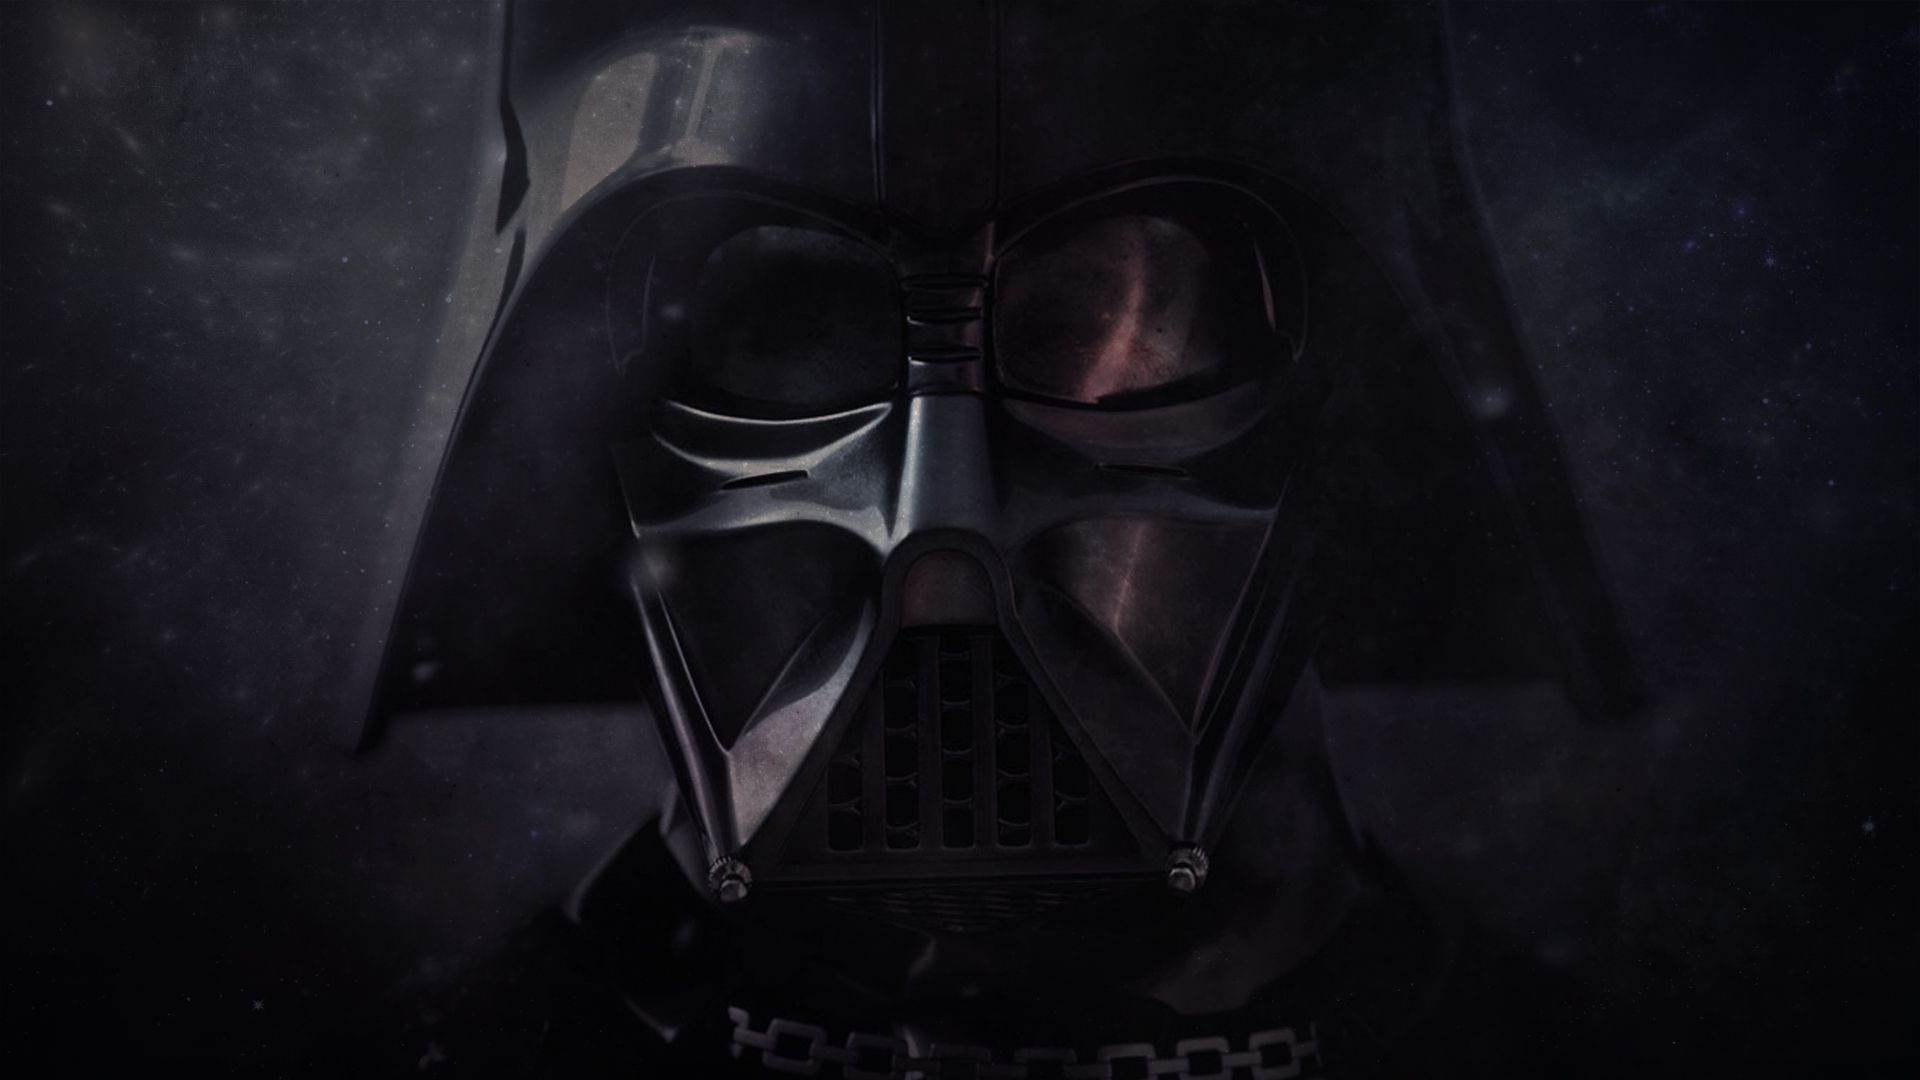 darth vader wallpaper 4k